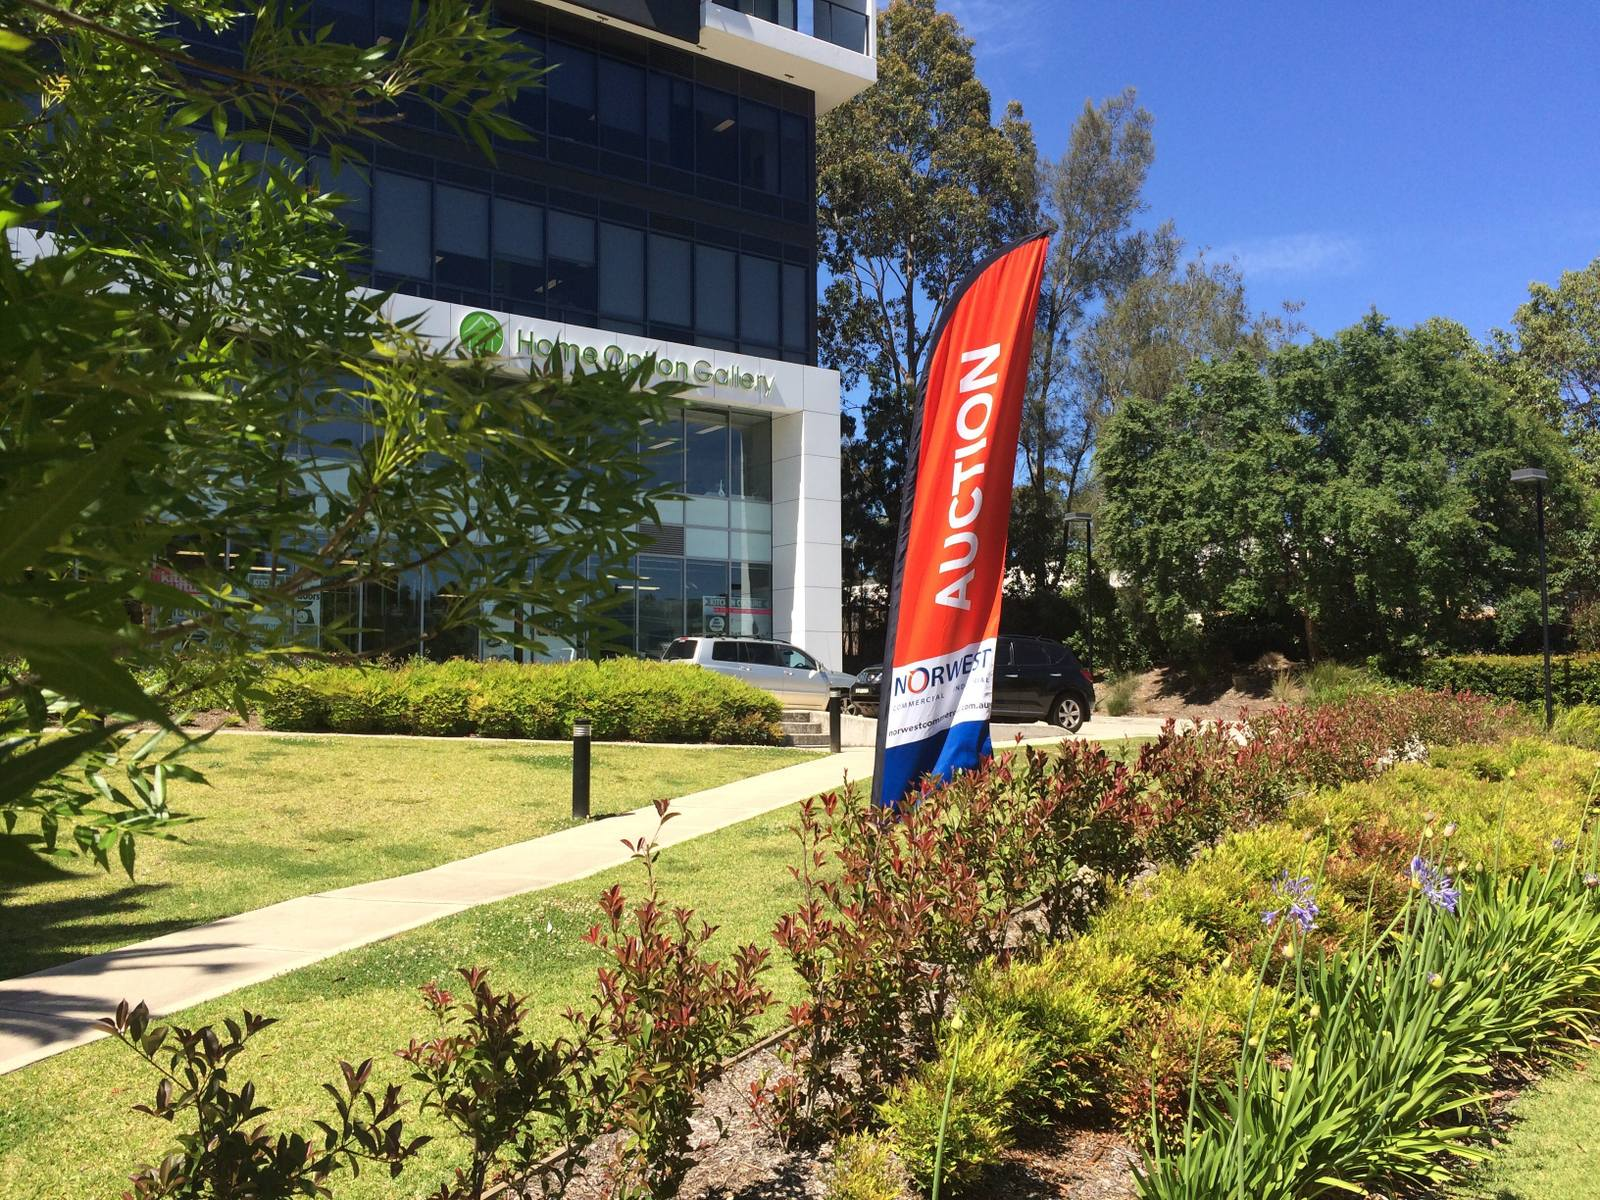 NORWEST COMMERCIAL & COUTTS ACHIEVE BUMPER RESULTS AT SUMMER AUCTION